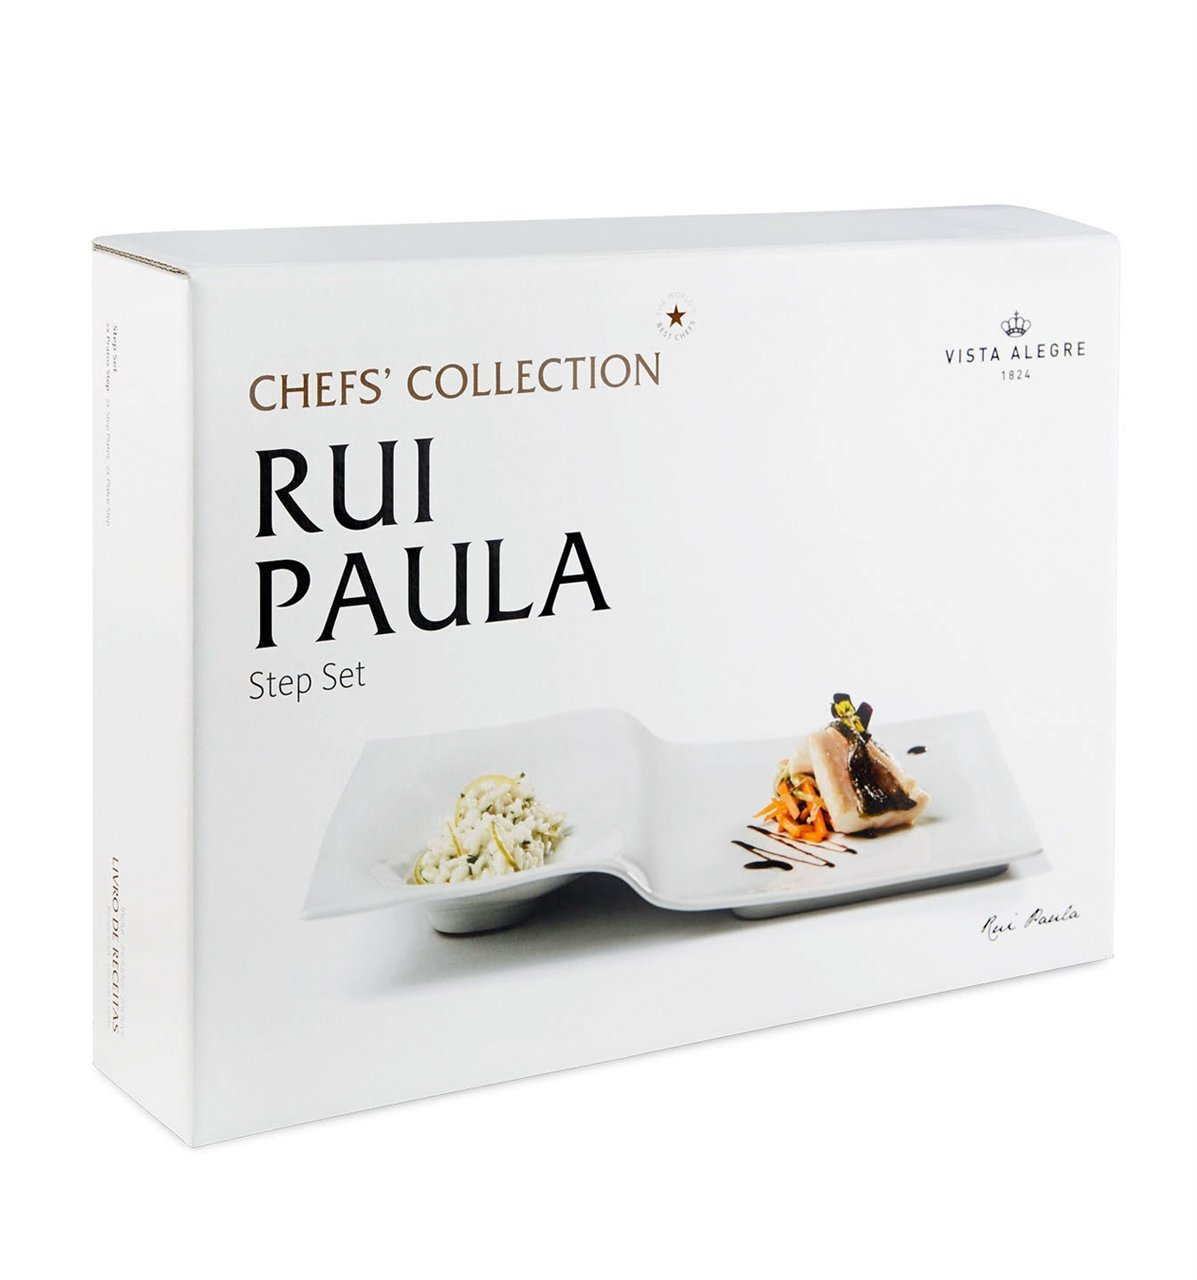 VISTA ALEGRE - Chefs' Collection by Chef Rui Paula (Ref # 21120620) Porcelain Step by Unknown